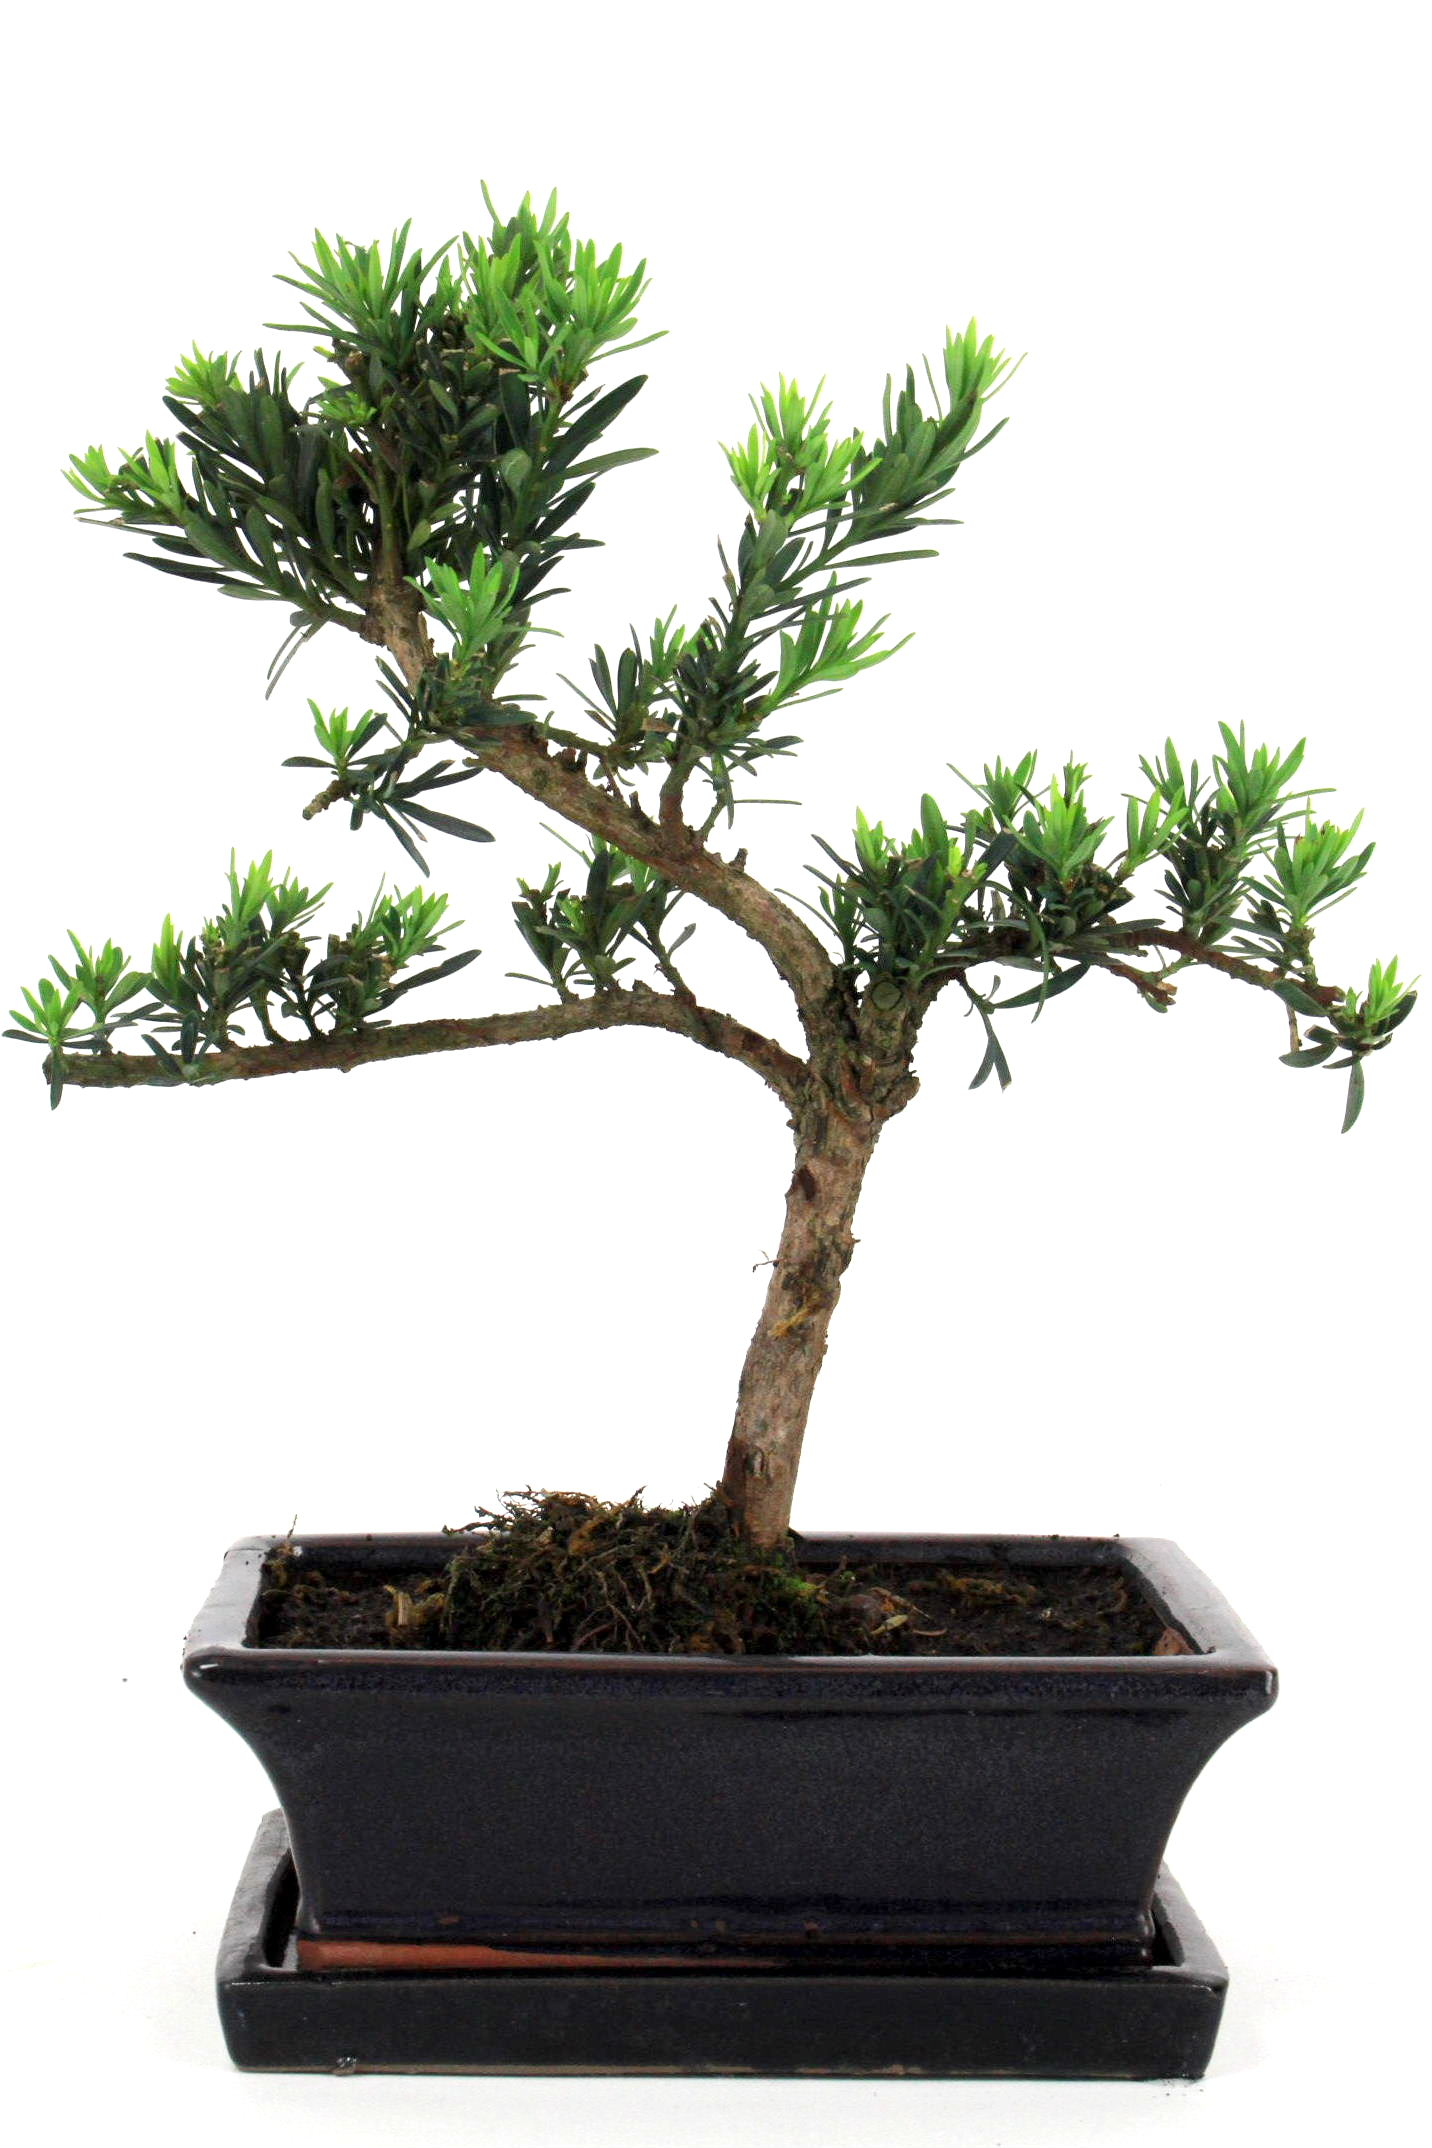 Steineibe bonsai 35 40 cm 1922 bei oyaki bonsai kaufen for Bonsai onlineshop